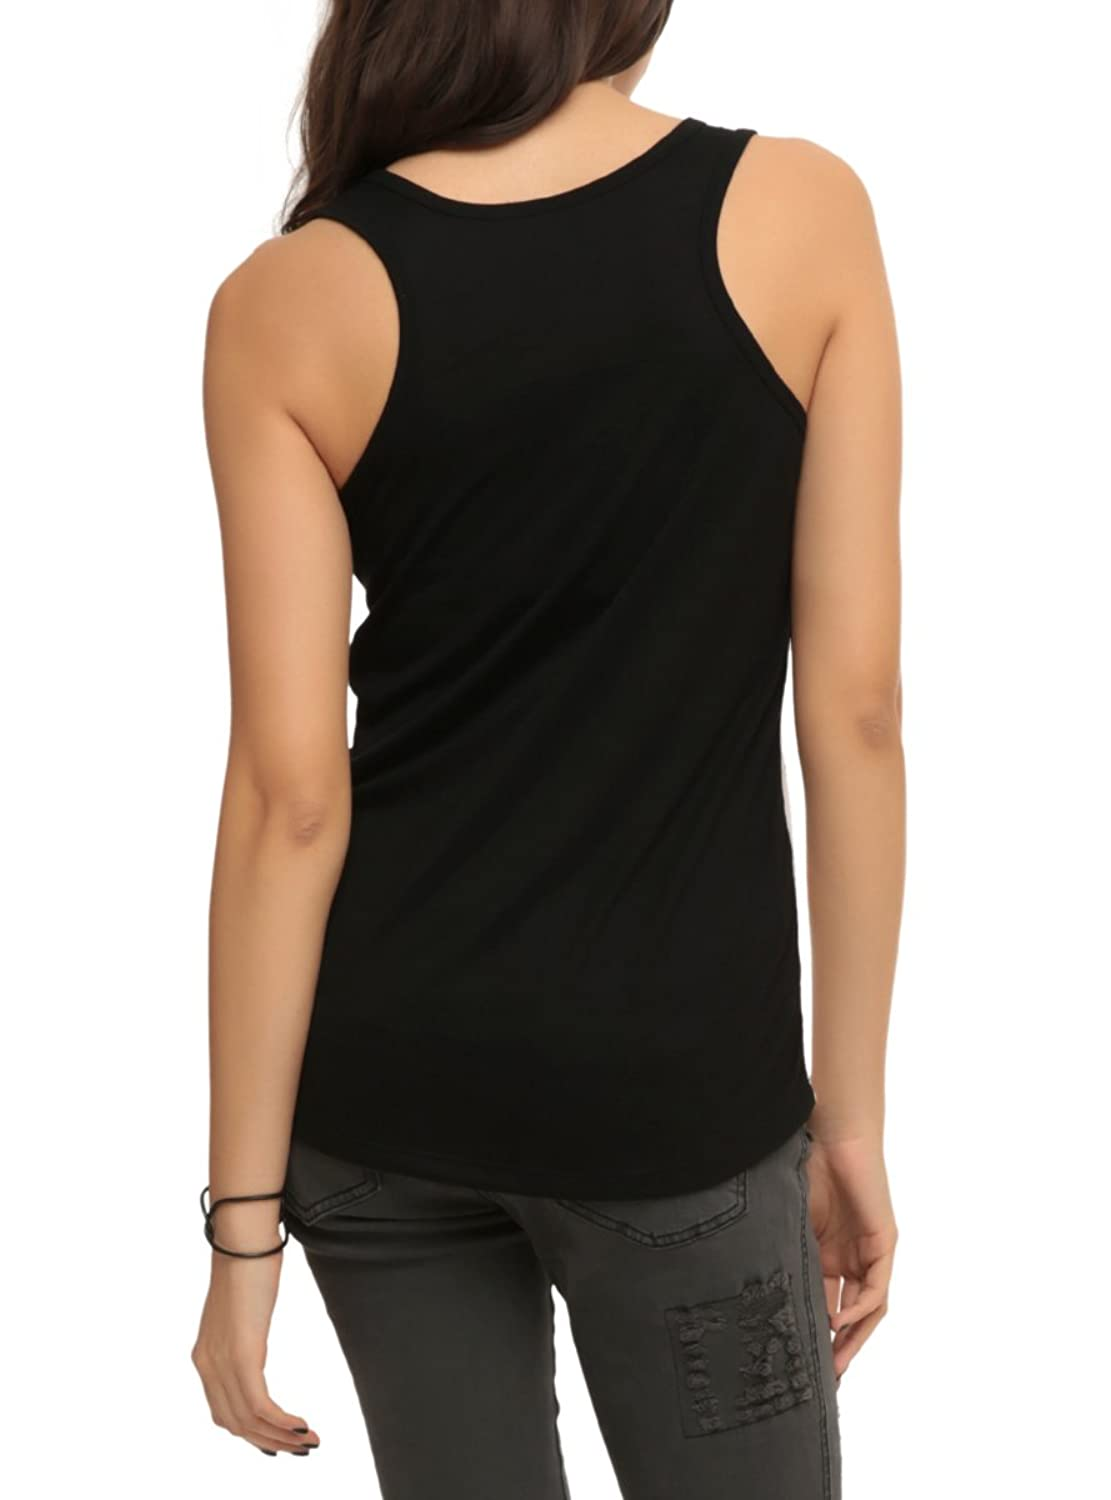 Black Butler Silly Sublimation Girls Tank Top